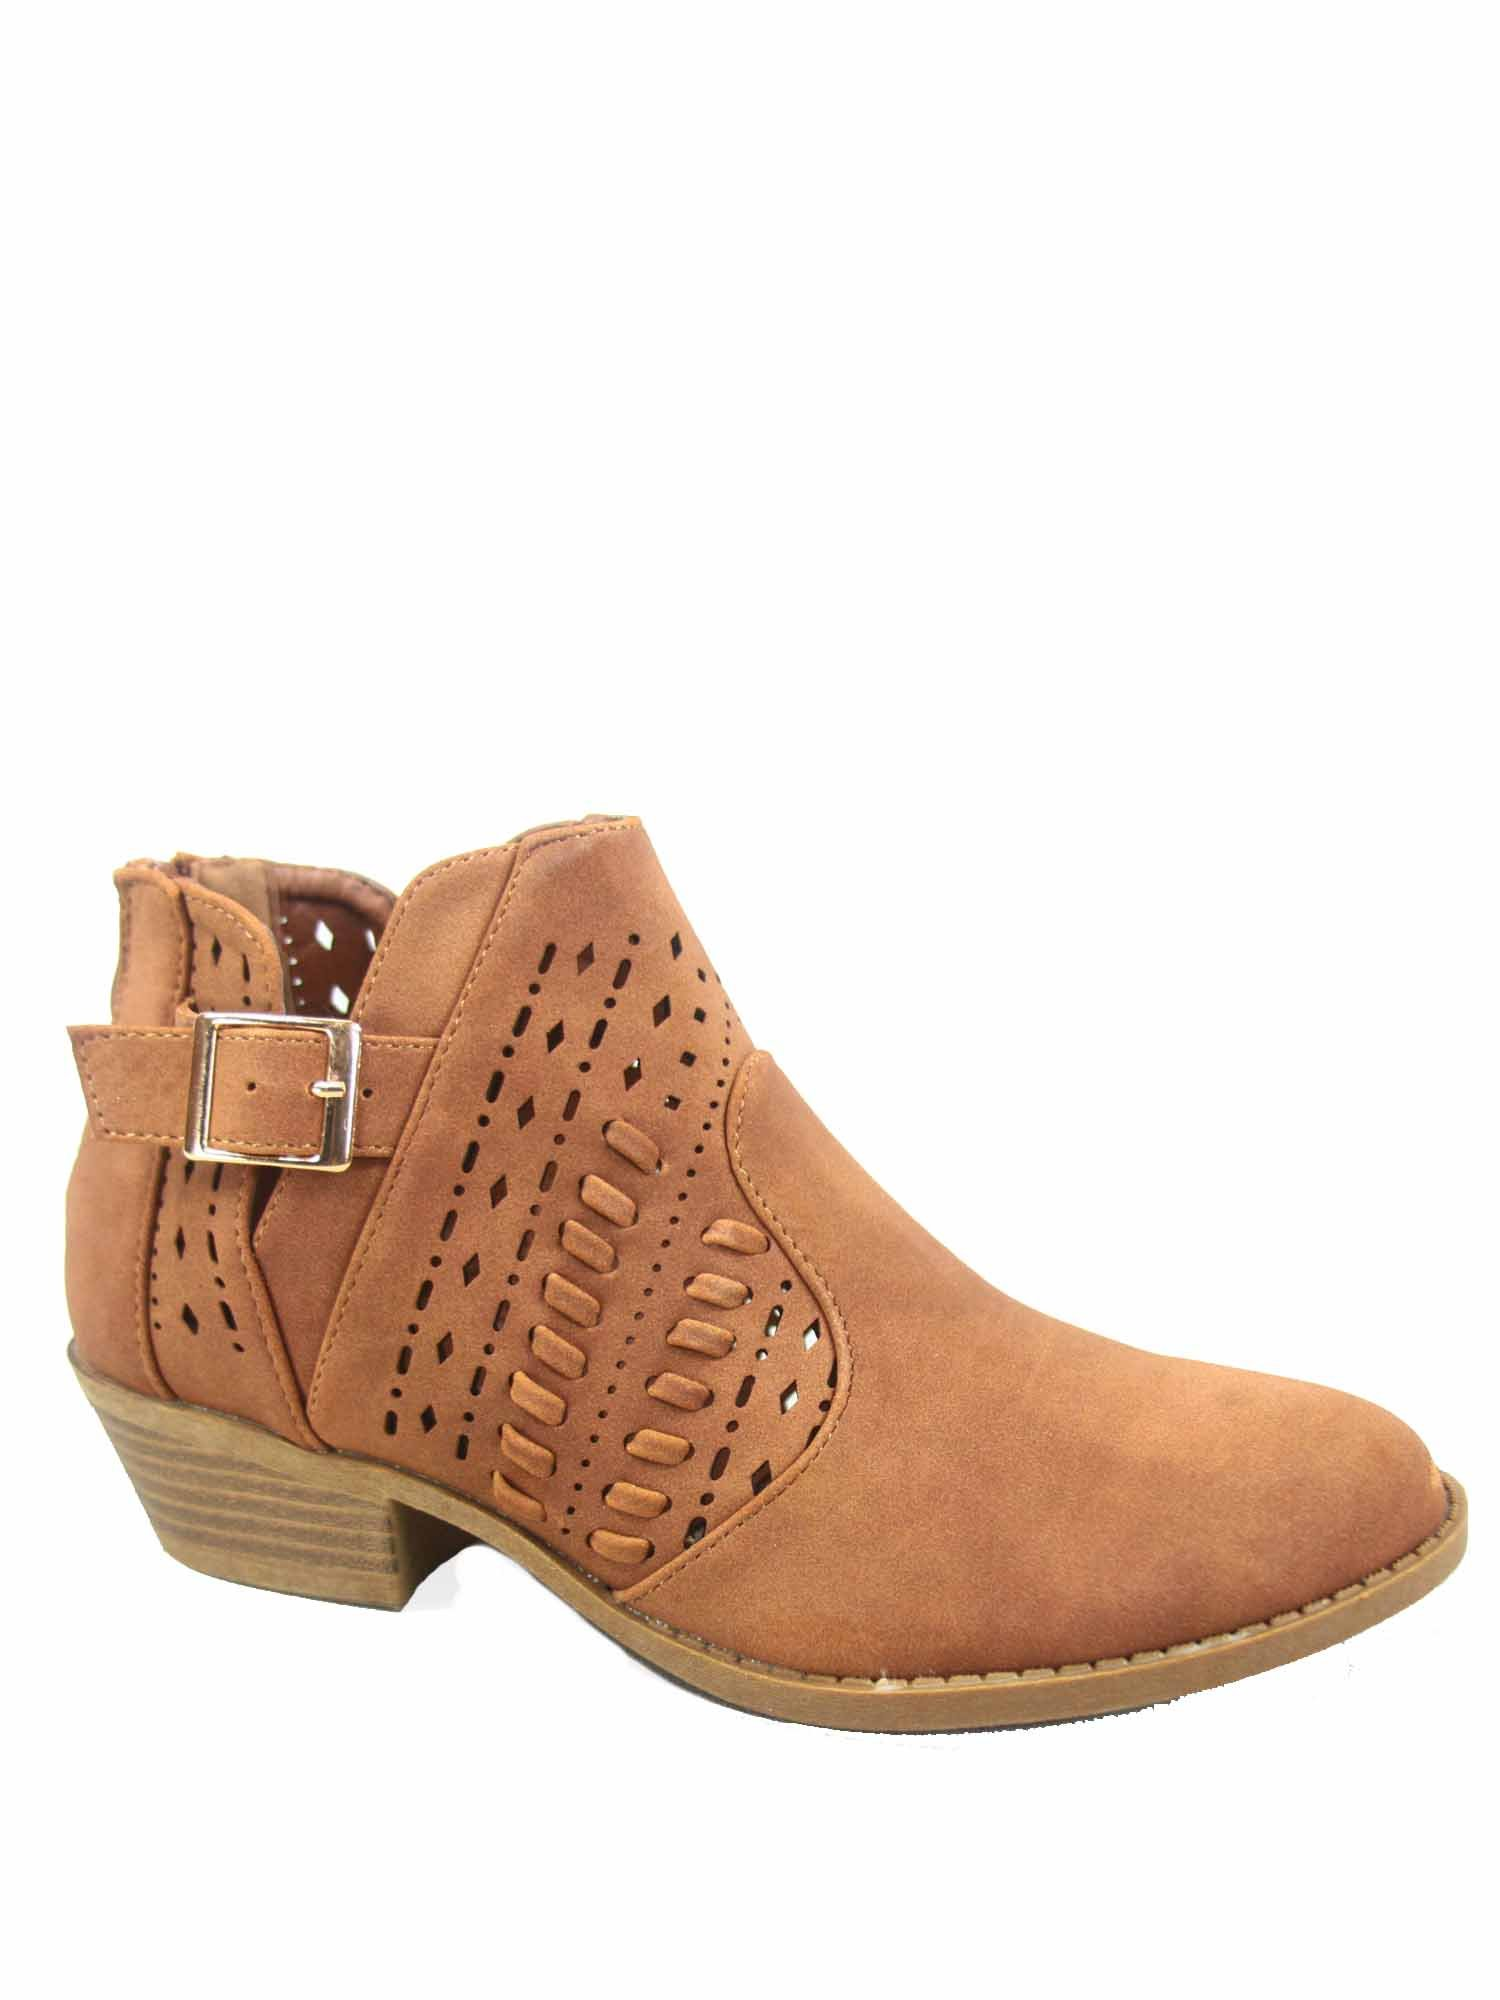 Top Moda Judy-9 Women's Fashion Low Heel Western Zipper Ankle Booties Shoes (6 B(M) US, Tan)